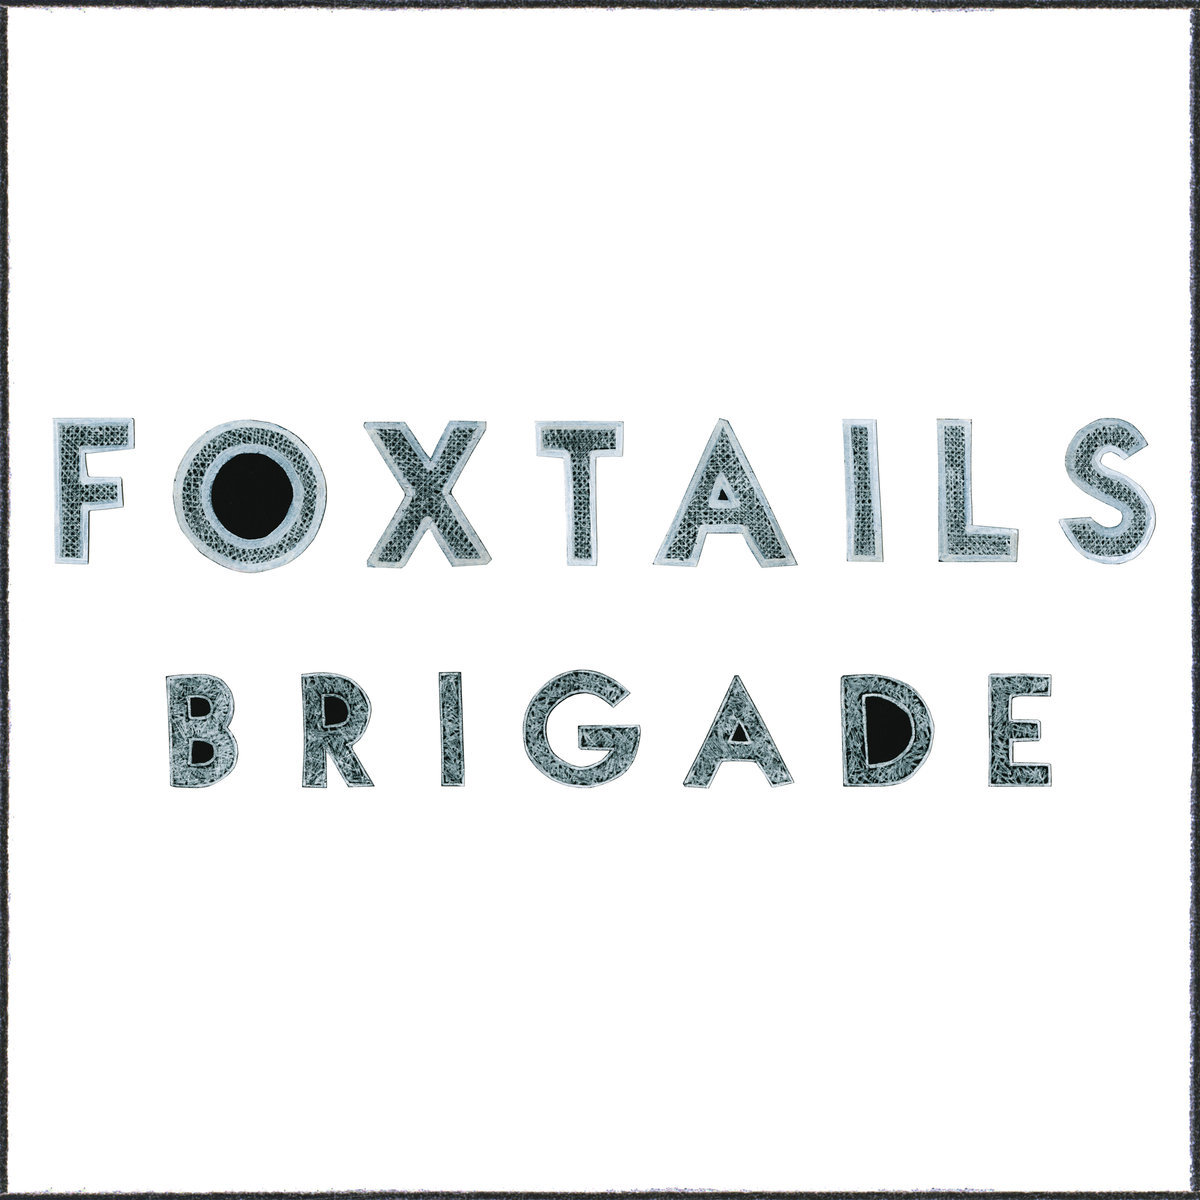 Includes unlimited streaming of Foxtails Brigade via the free Bandcamp app,  plus high-quality download in MP3, FLAC and more.